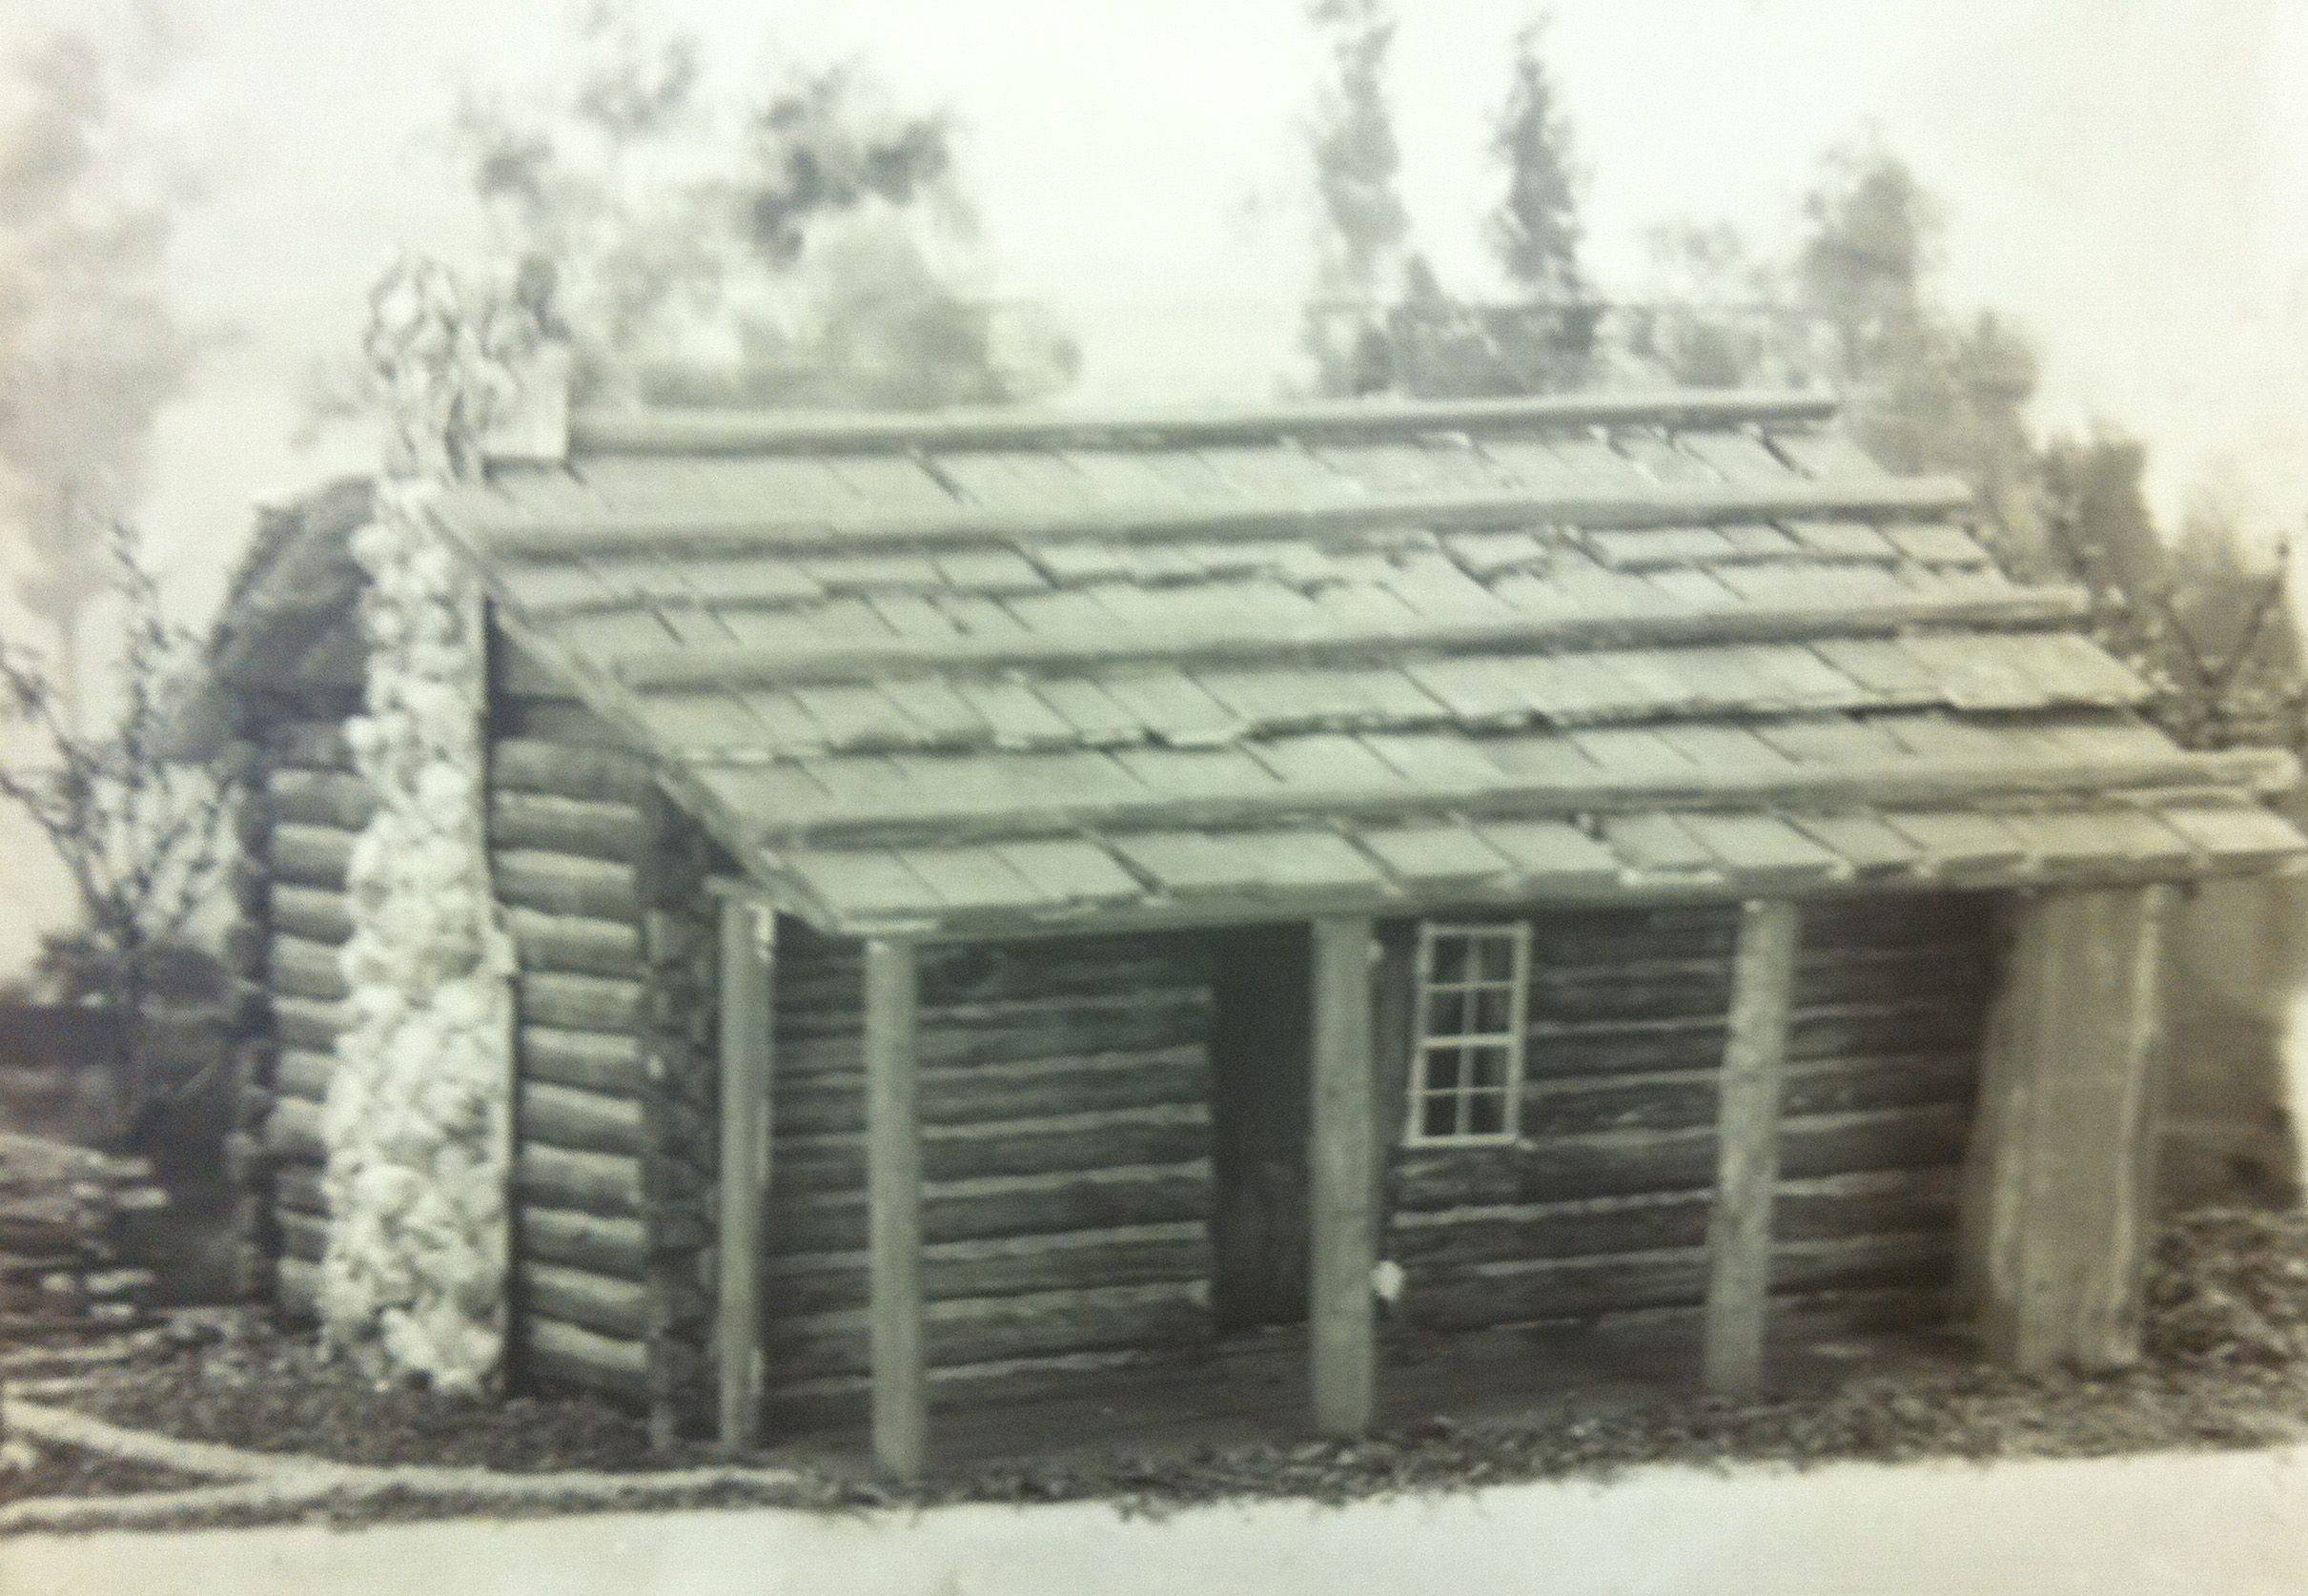 The home of James T. Gifford at Prairie and Villa streets as it was described by his widow and other pioneers. First Congregational Church was organized in this cabin and used it as a meeting place for its first three years.